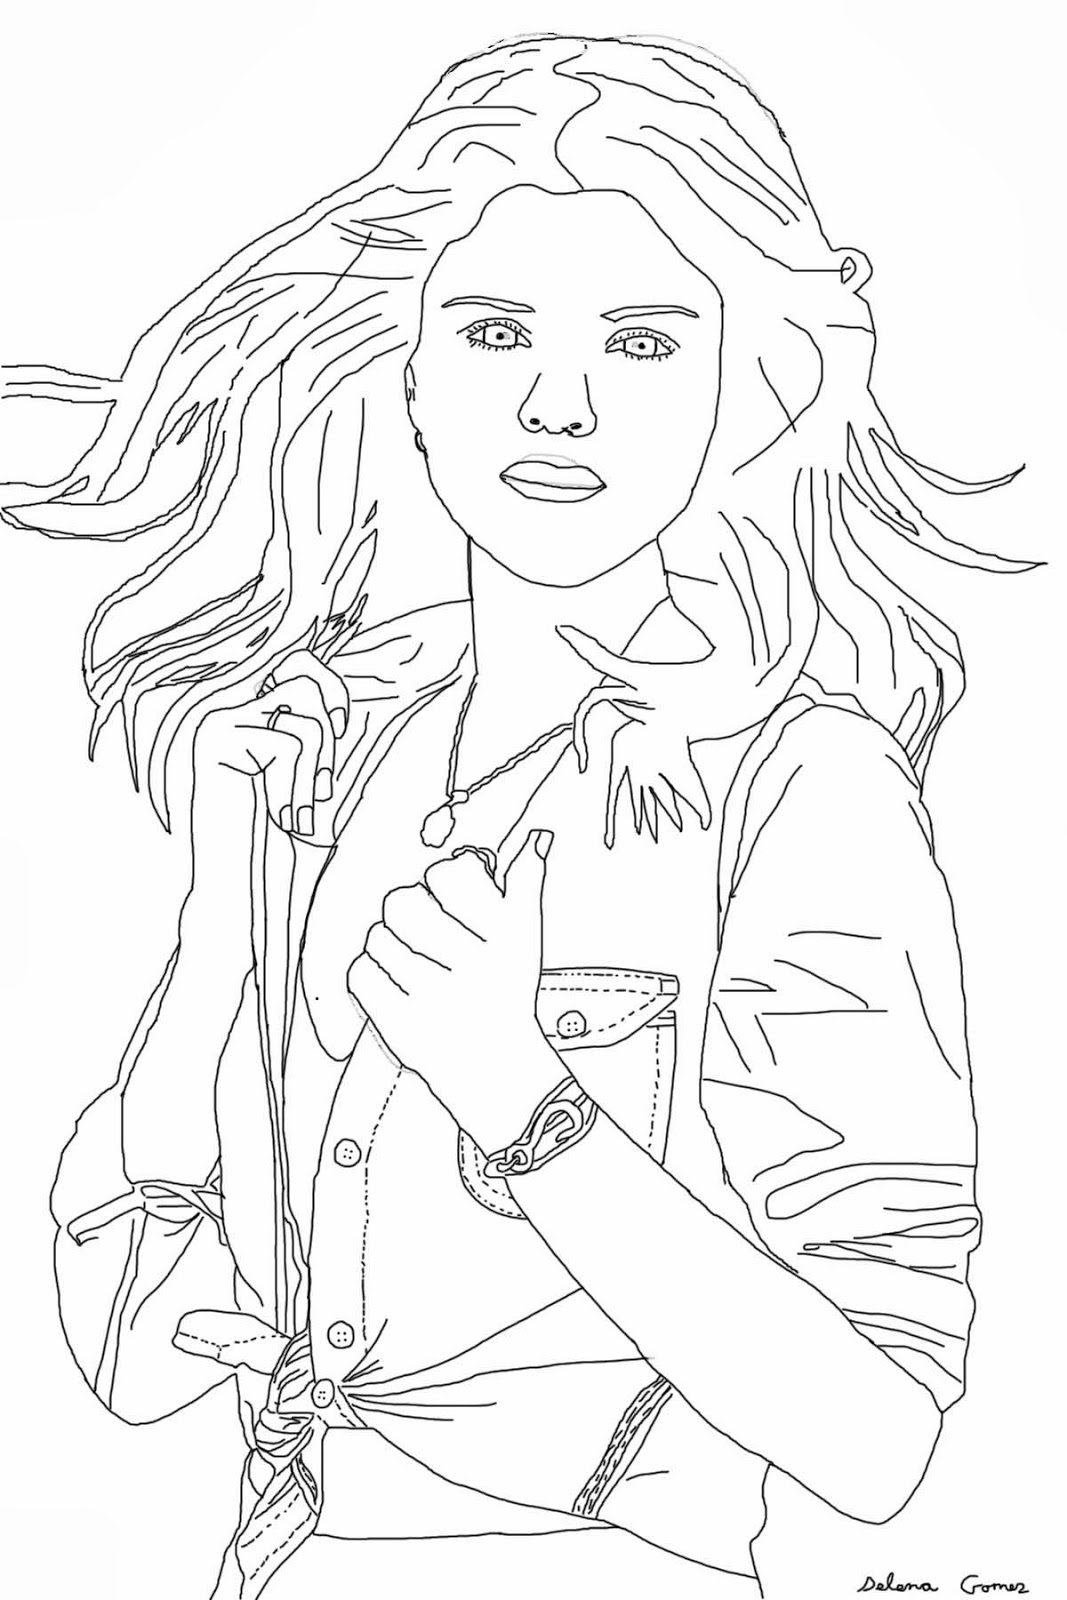 selena gomez coloring page - selena gomes free colouring pages